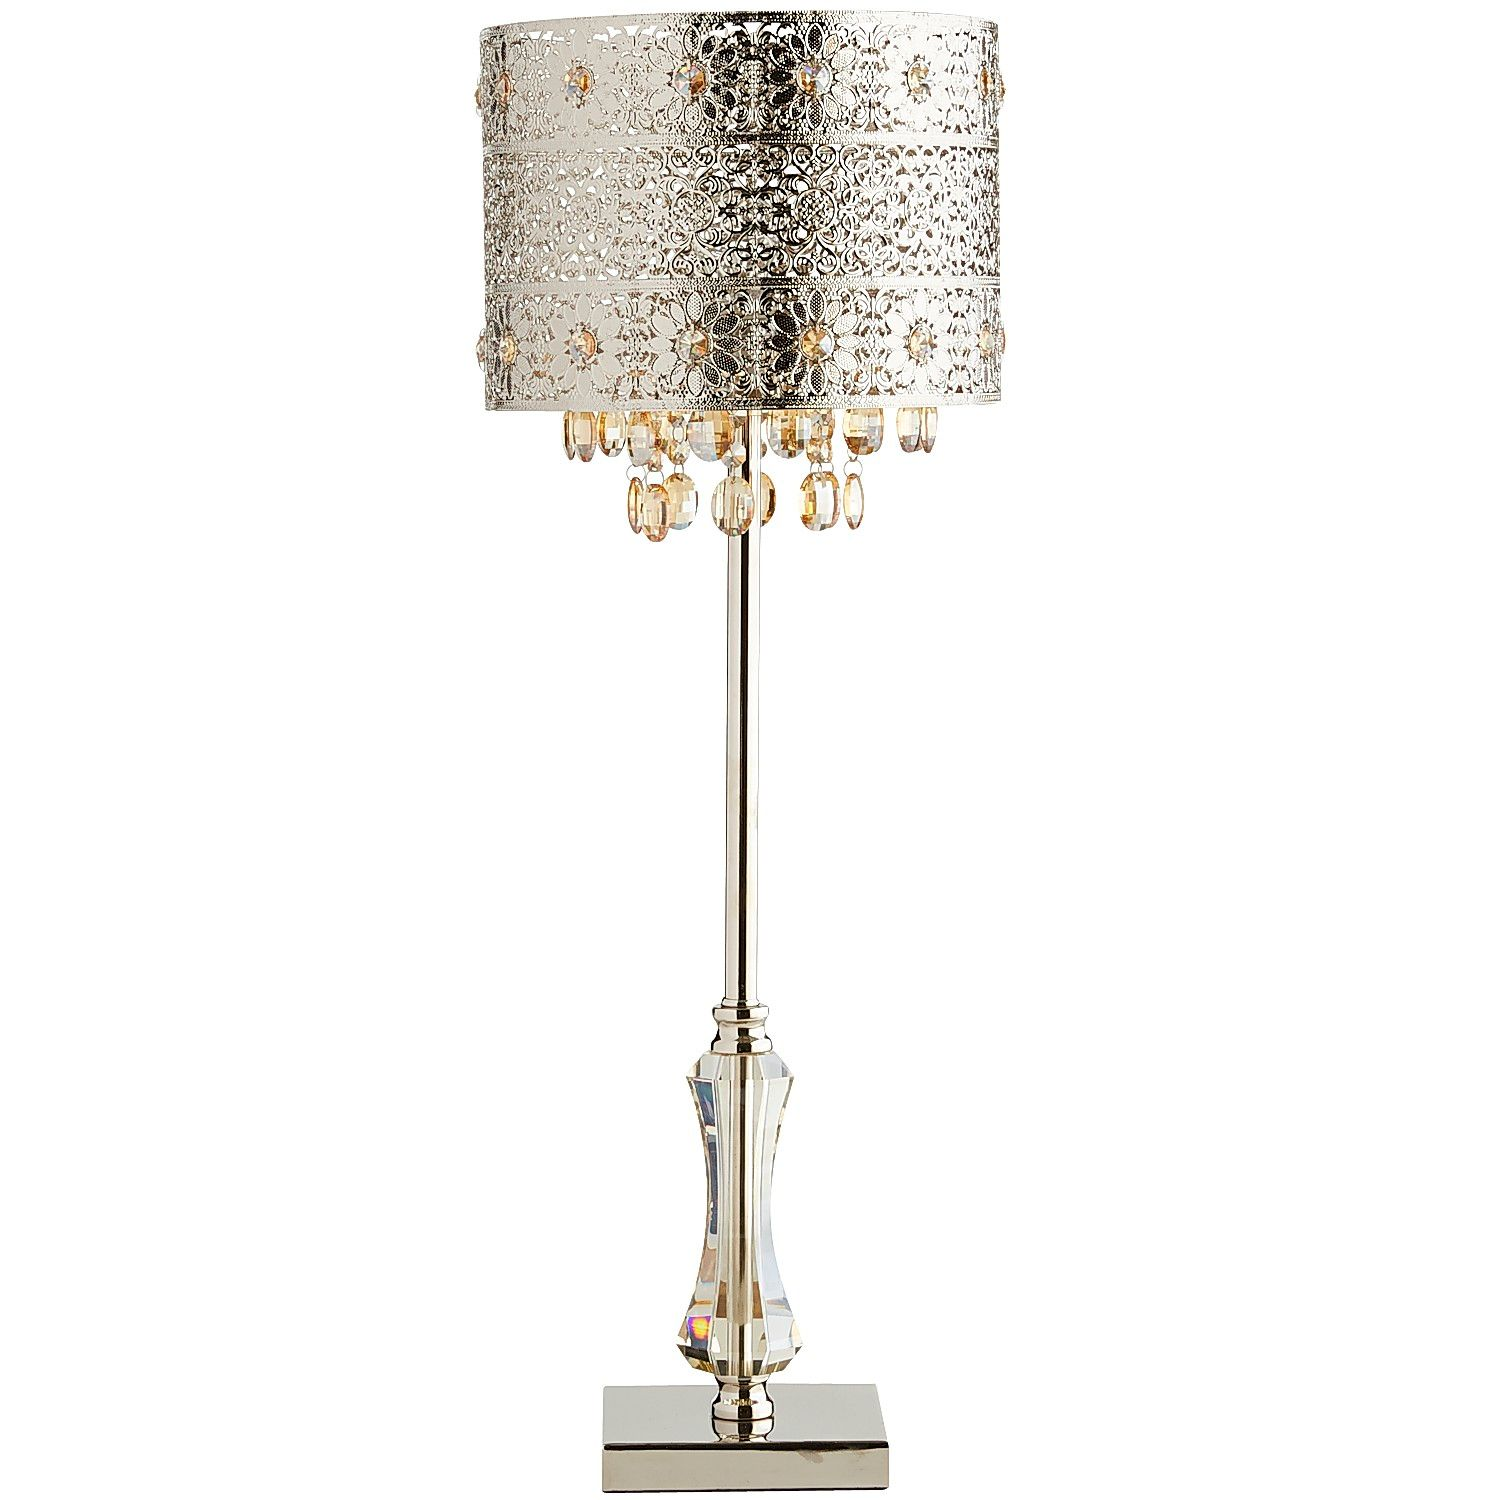 bohemian crystal table lamp pier imports accent decorative objects for home round garden coffee contemporary tables toronto antique retro furniture cocktail linens rustic